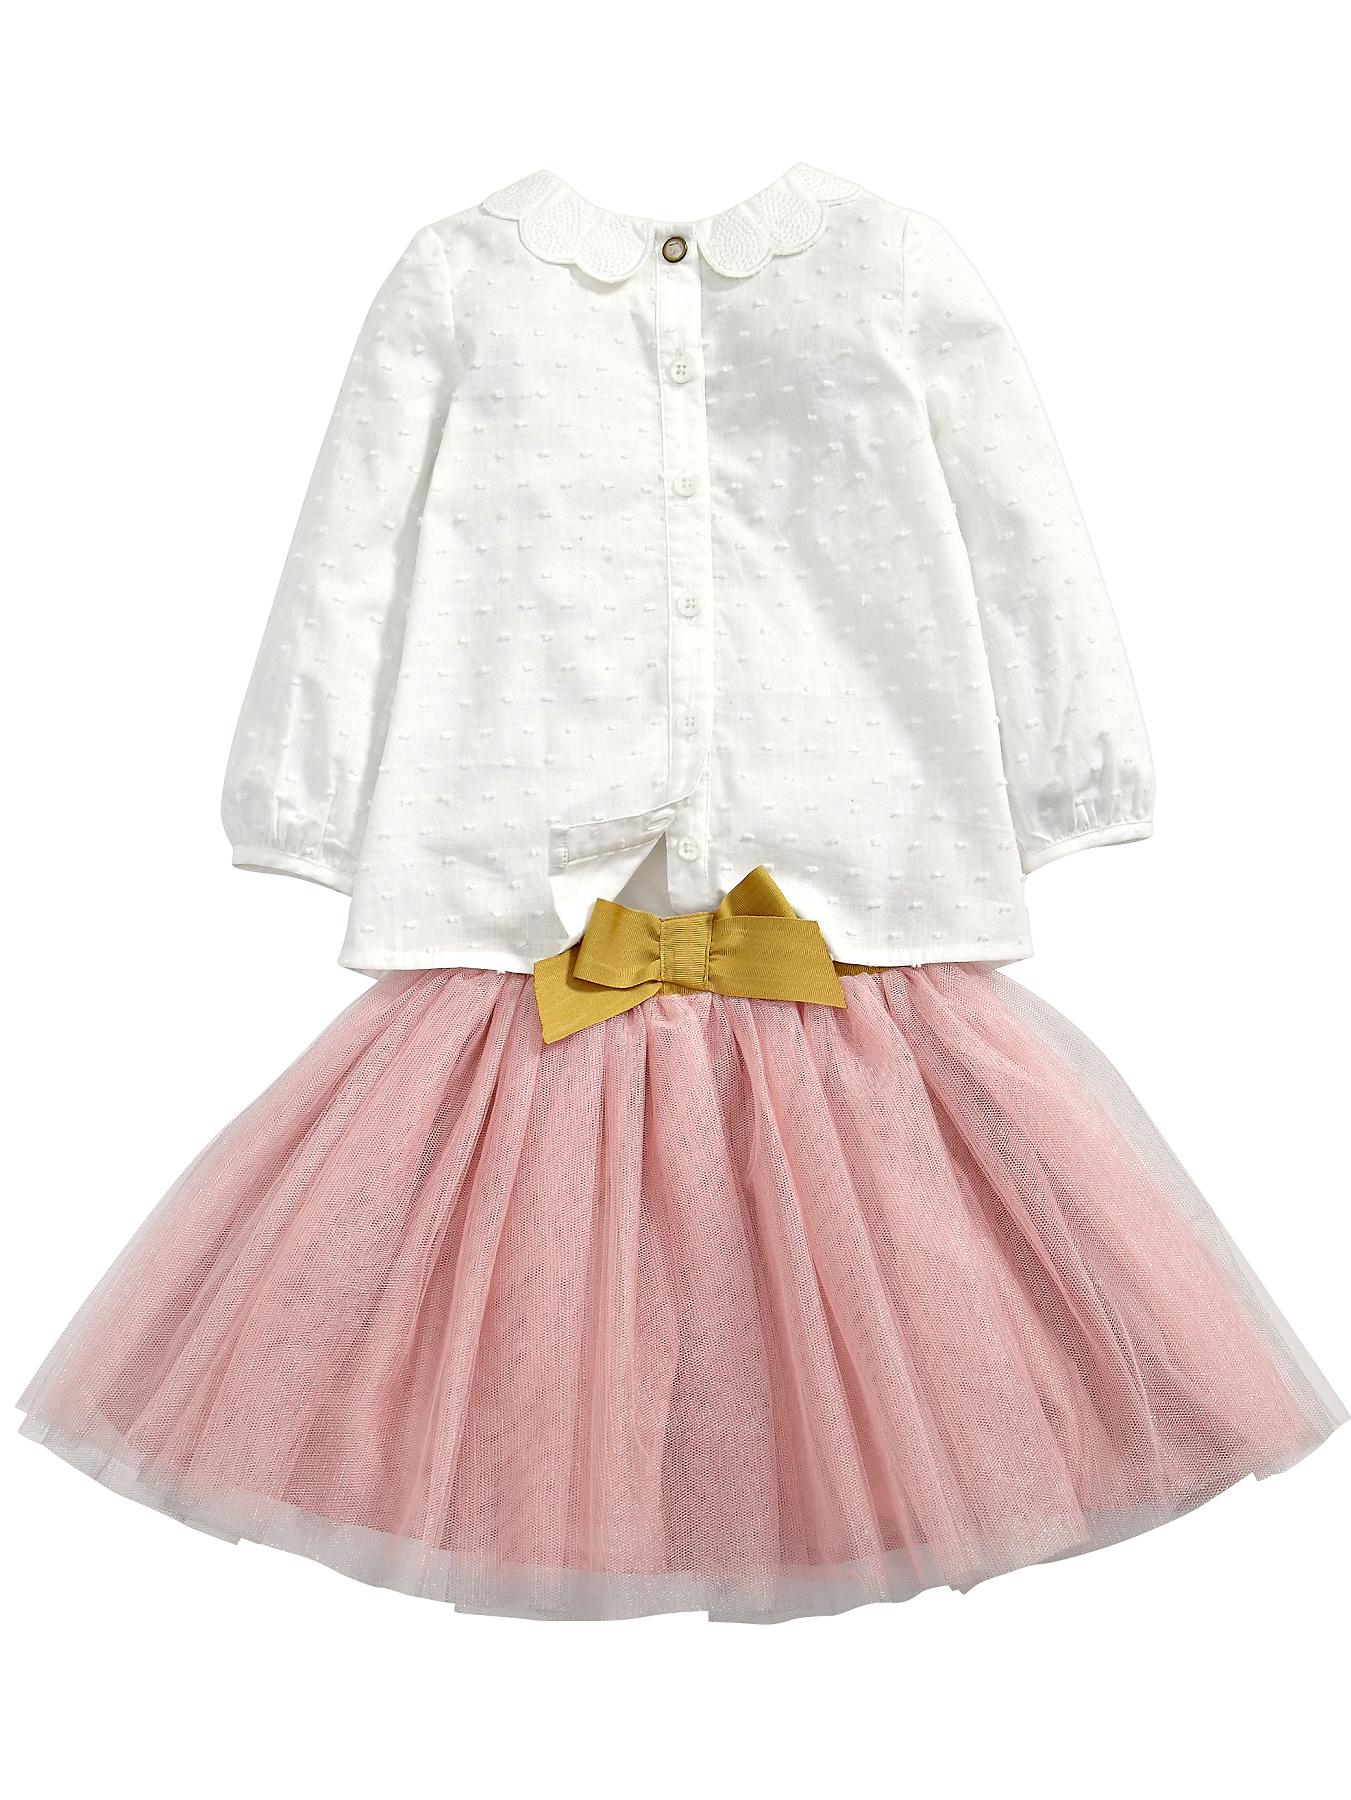 Mamas & Papas Blouse and Tutu Set - Cream, Cream